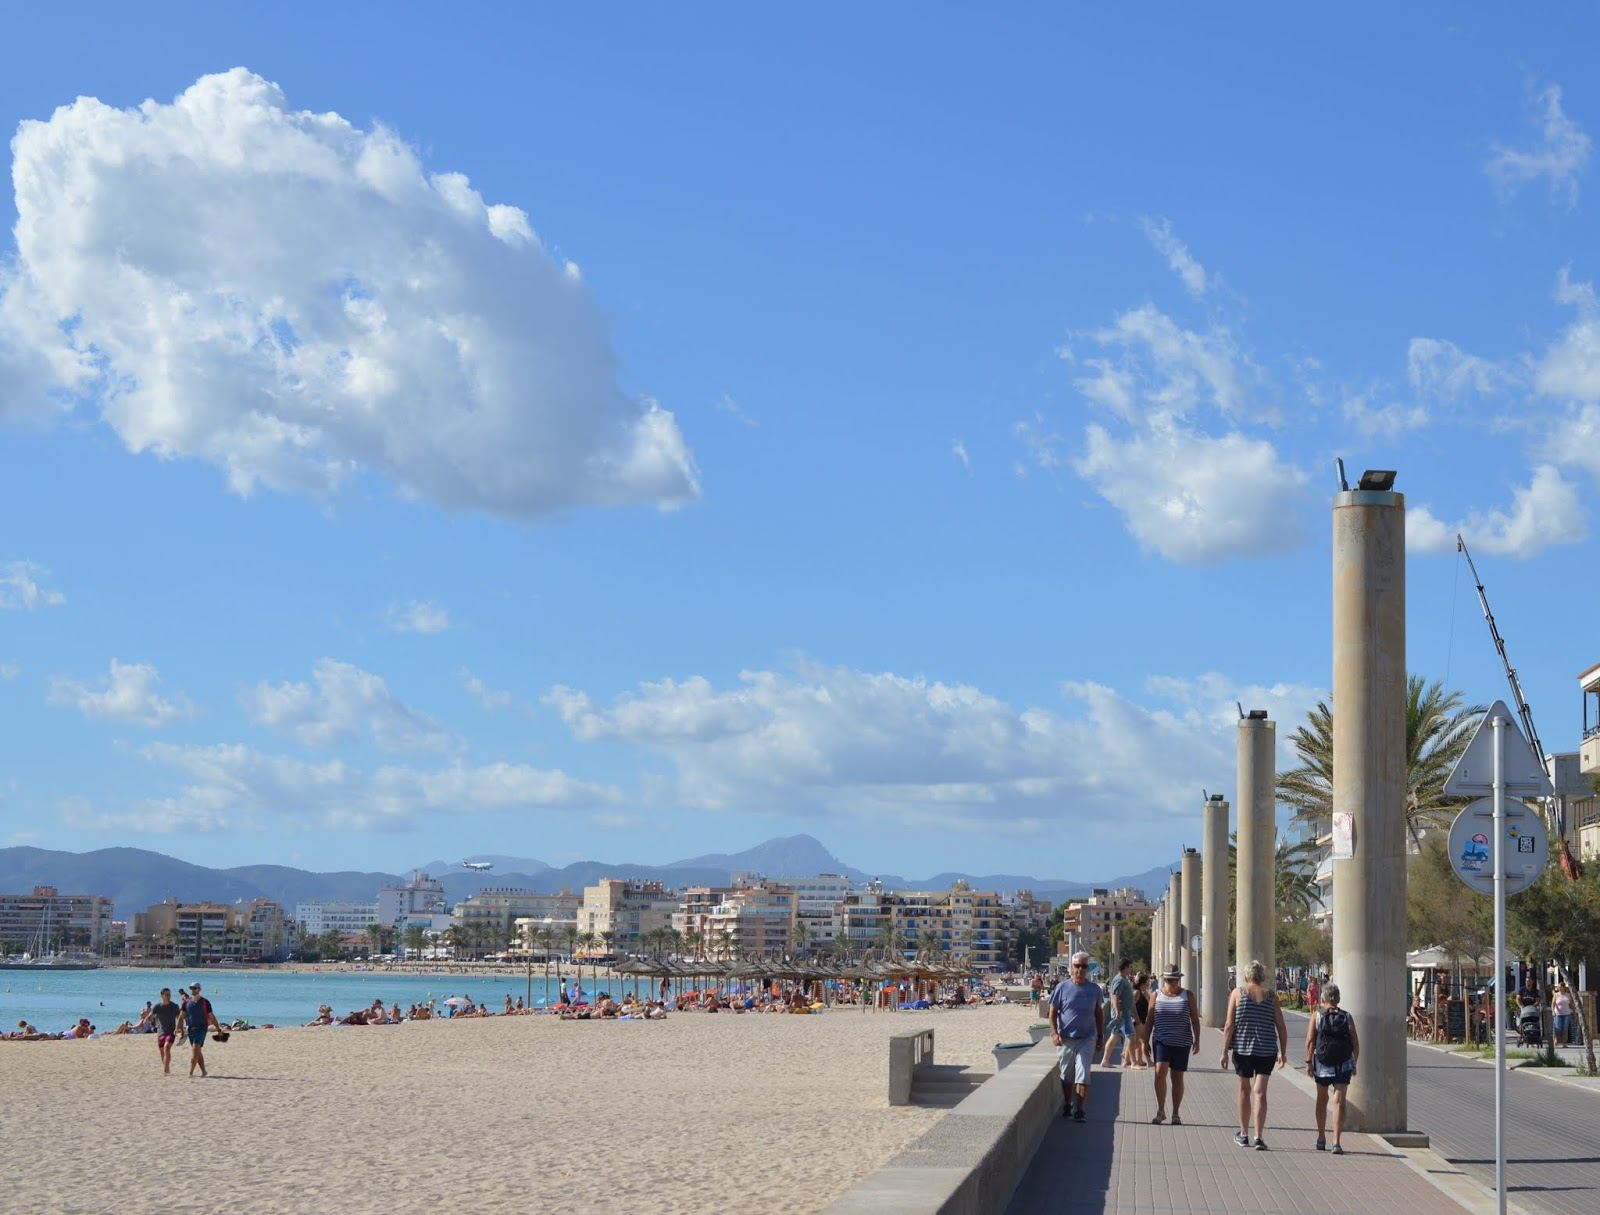 Visiting Palma Aquarium from Santa Ponsa  - Palma beach